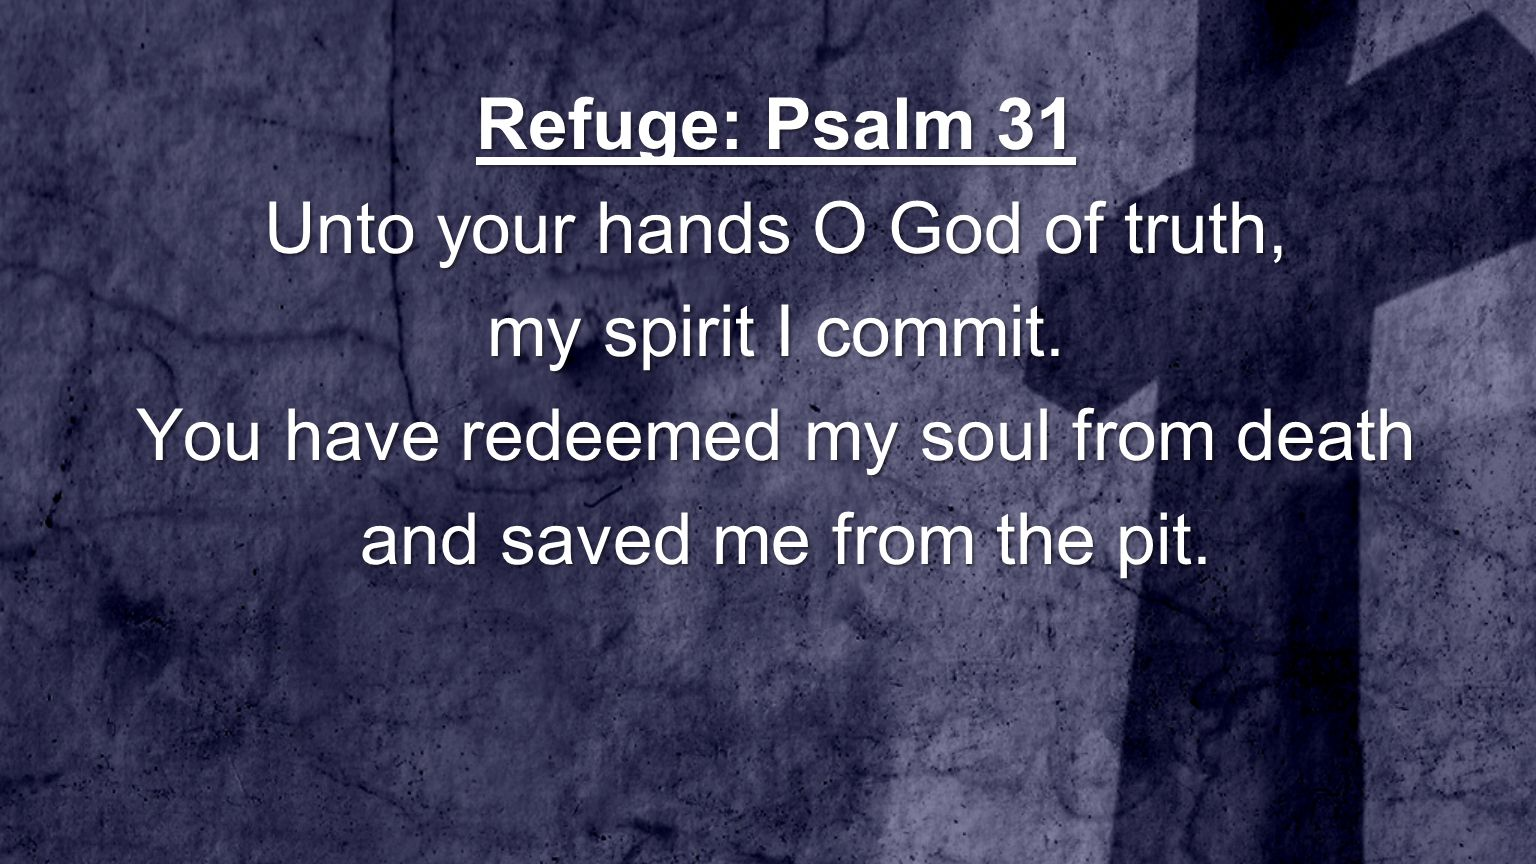 Unto your hands O God of truth, my spirit I commit.